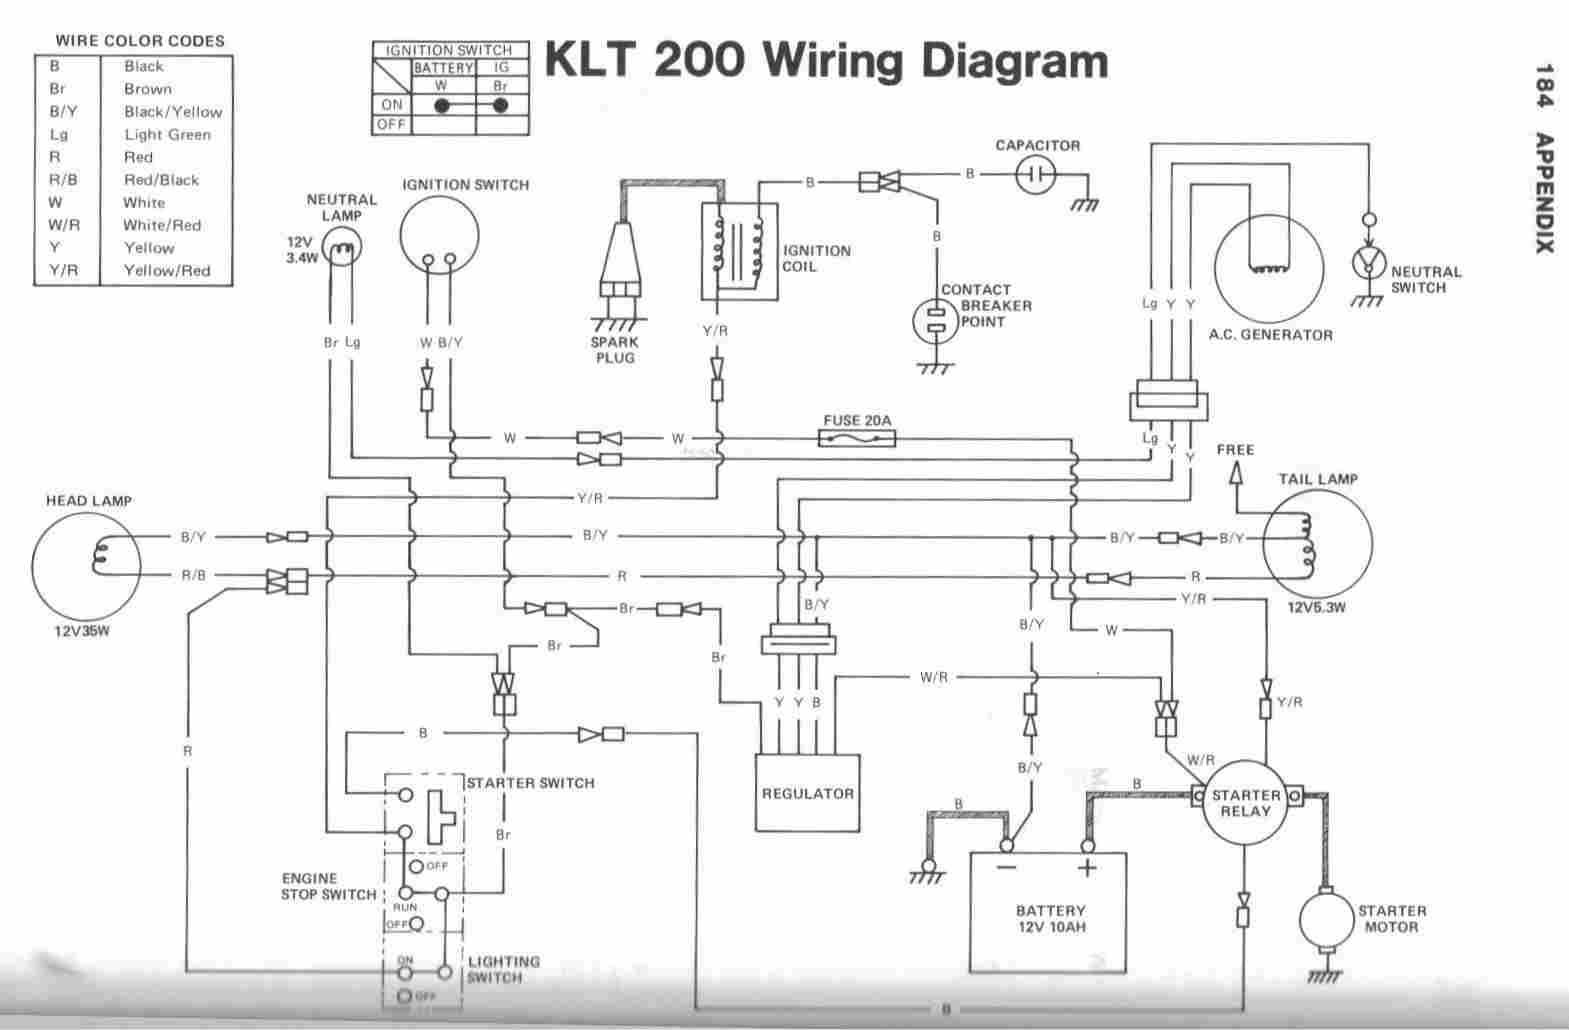 Residential Electrical Wiring Diagrams Pdf Easy Routing Electrical Circuit Diagram Electrical Wiring Electrical Wiring Diagram